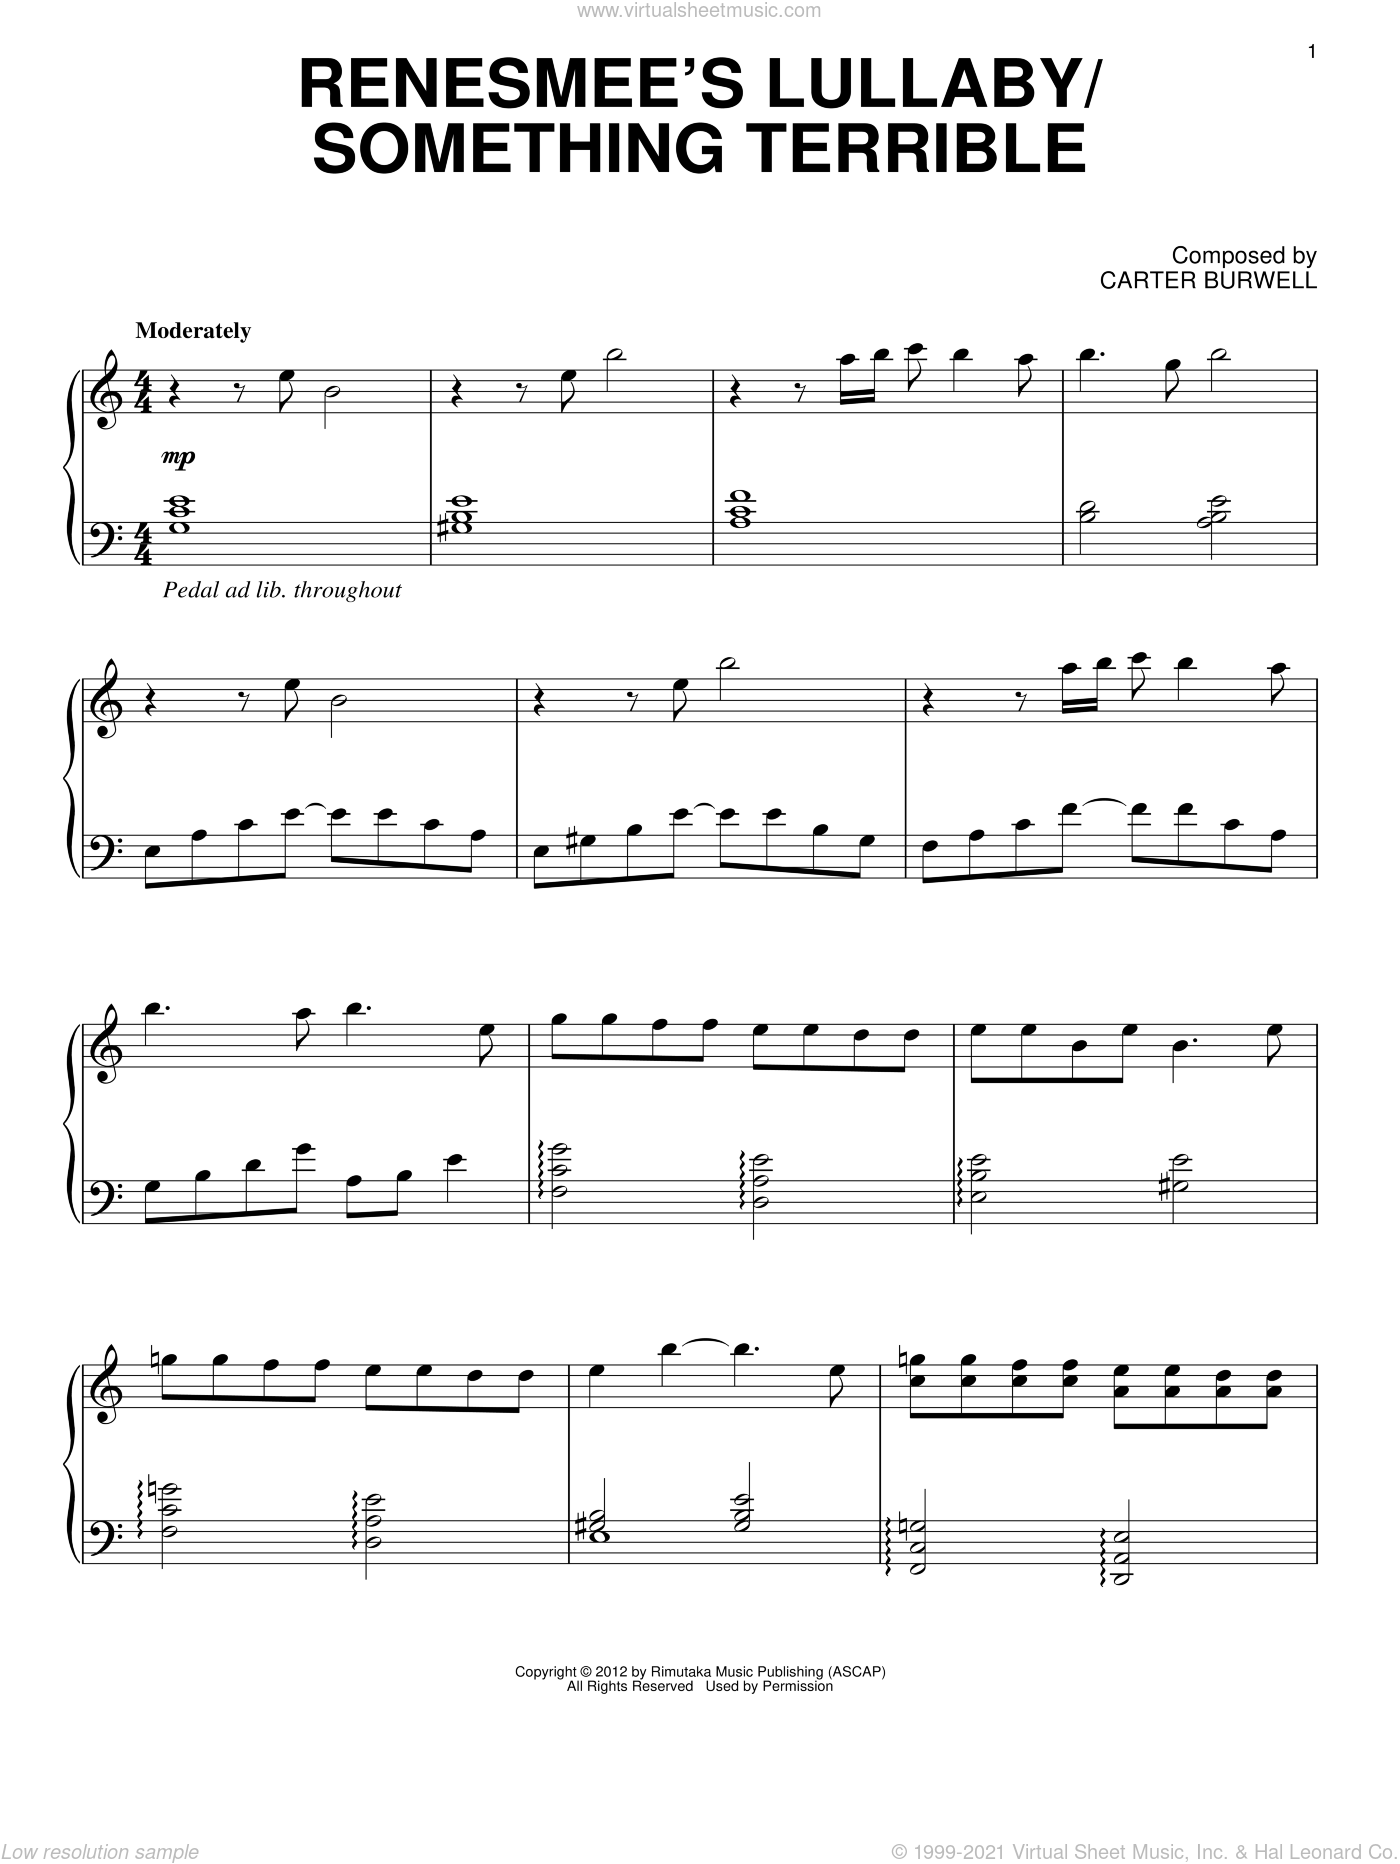 Renesmee's Lullaby/Something Terrible sheet music for piano solo by Carter Burwell and Twilight: Breaking Dawn Part 2 (Movie), intermediate skill level